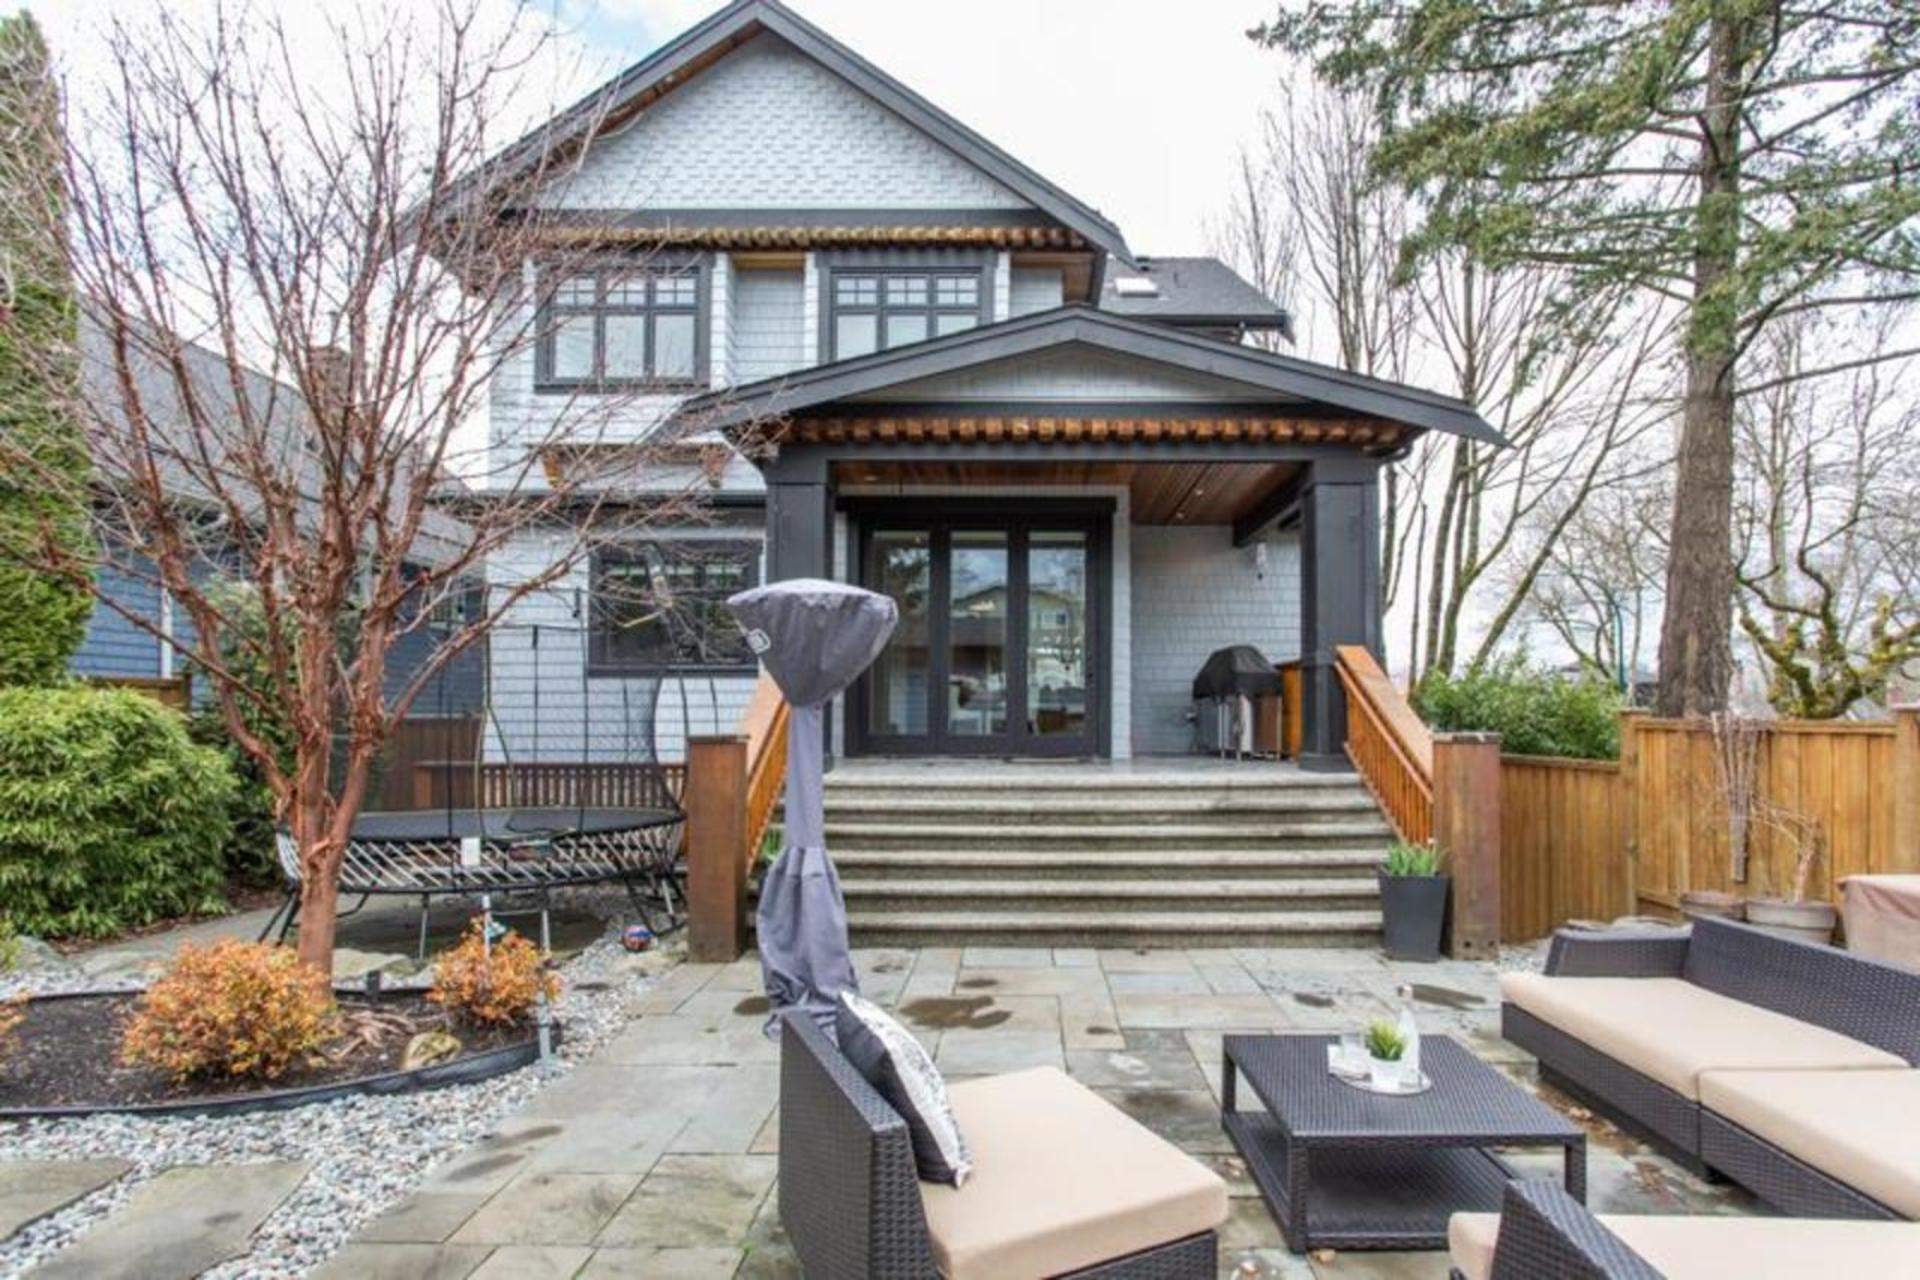 904-w-20th-avenue-cambie-vancouver-west-20 at 904 W 20th Avenue, Cambie, Vancouver West